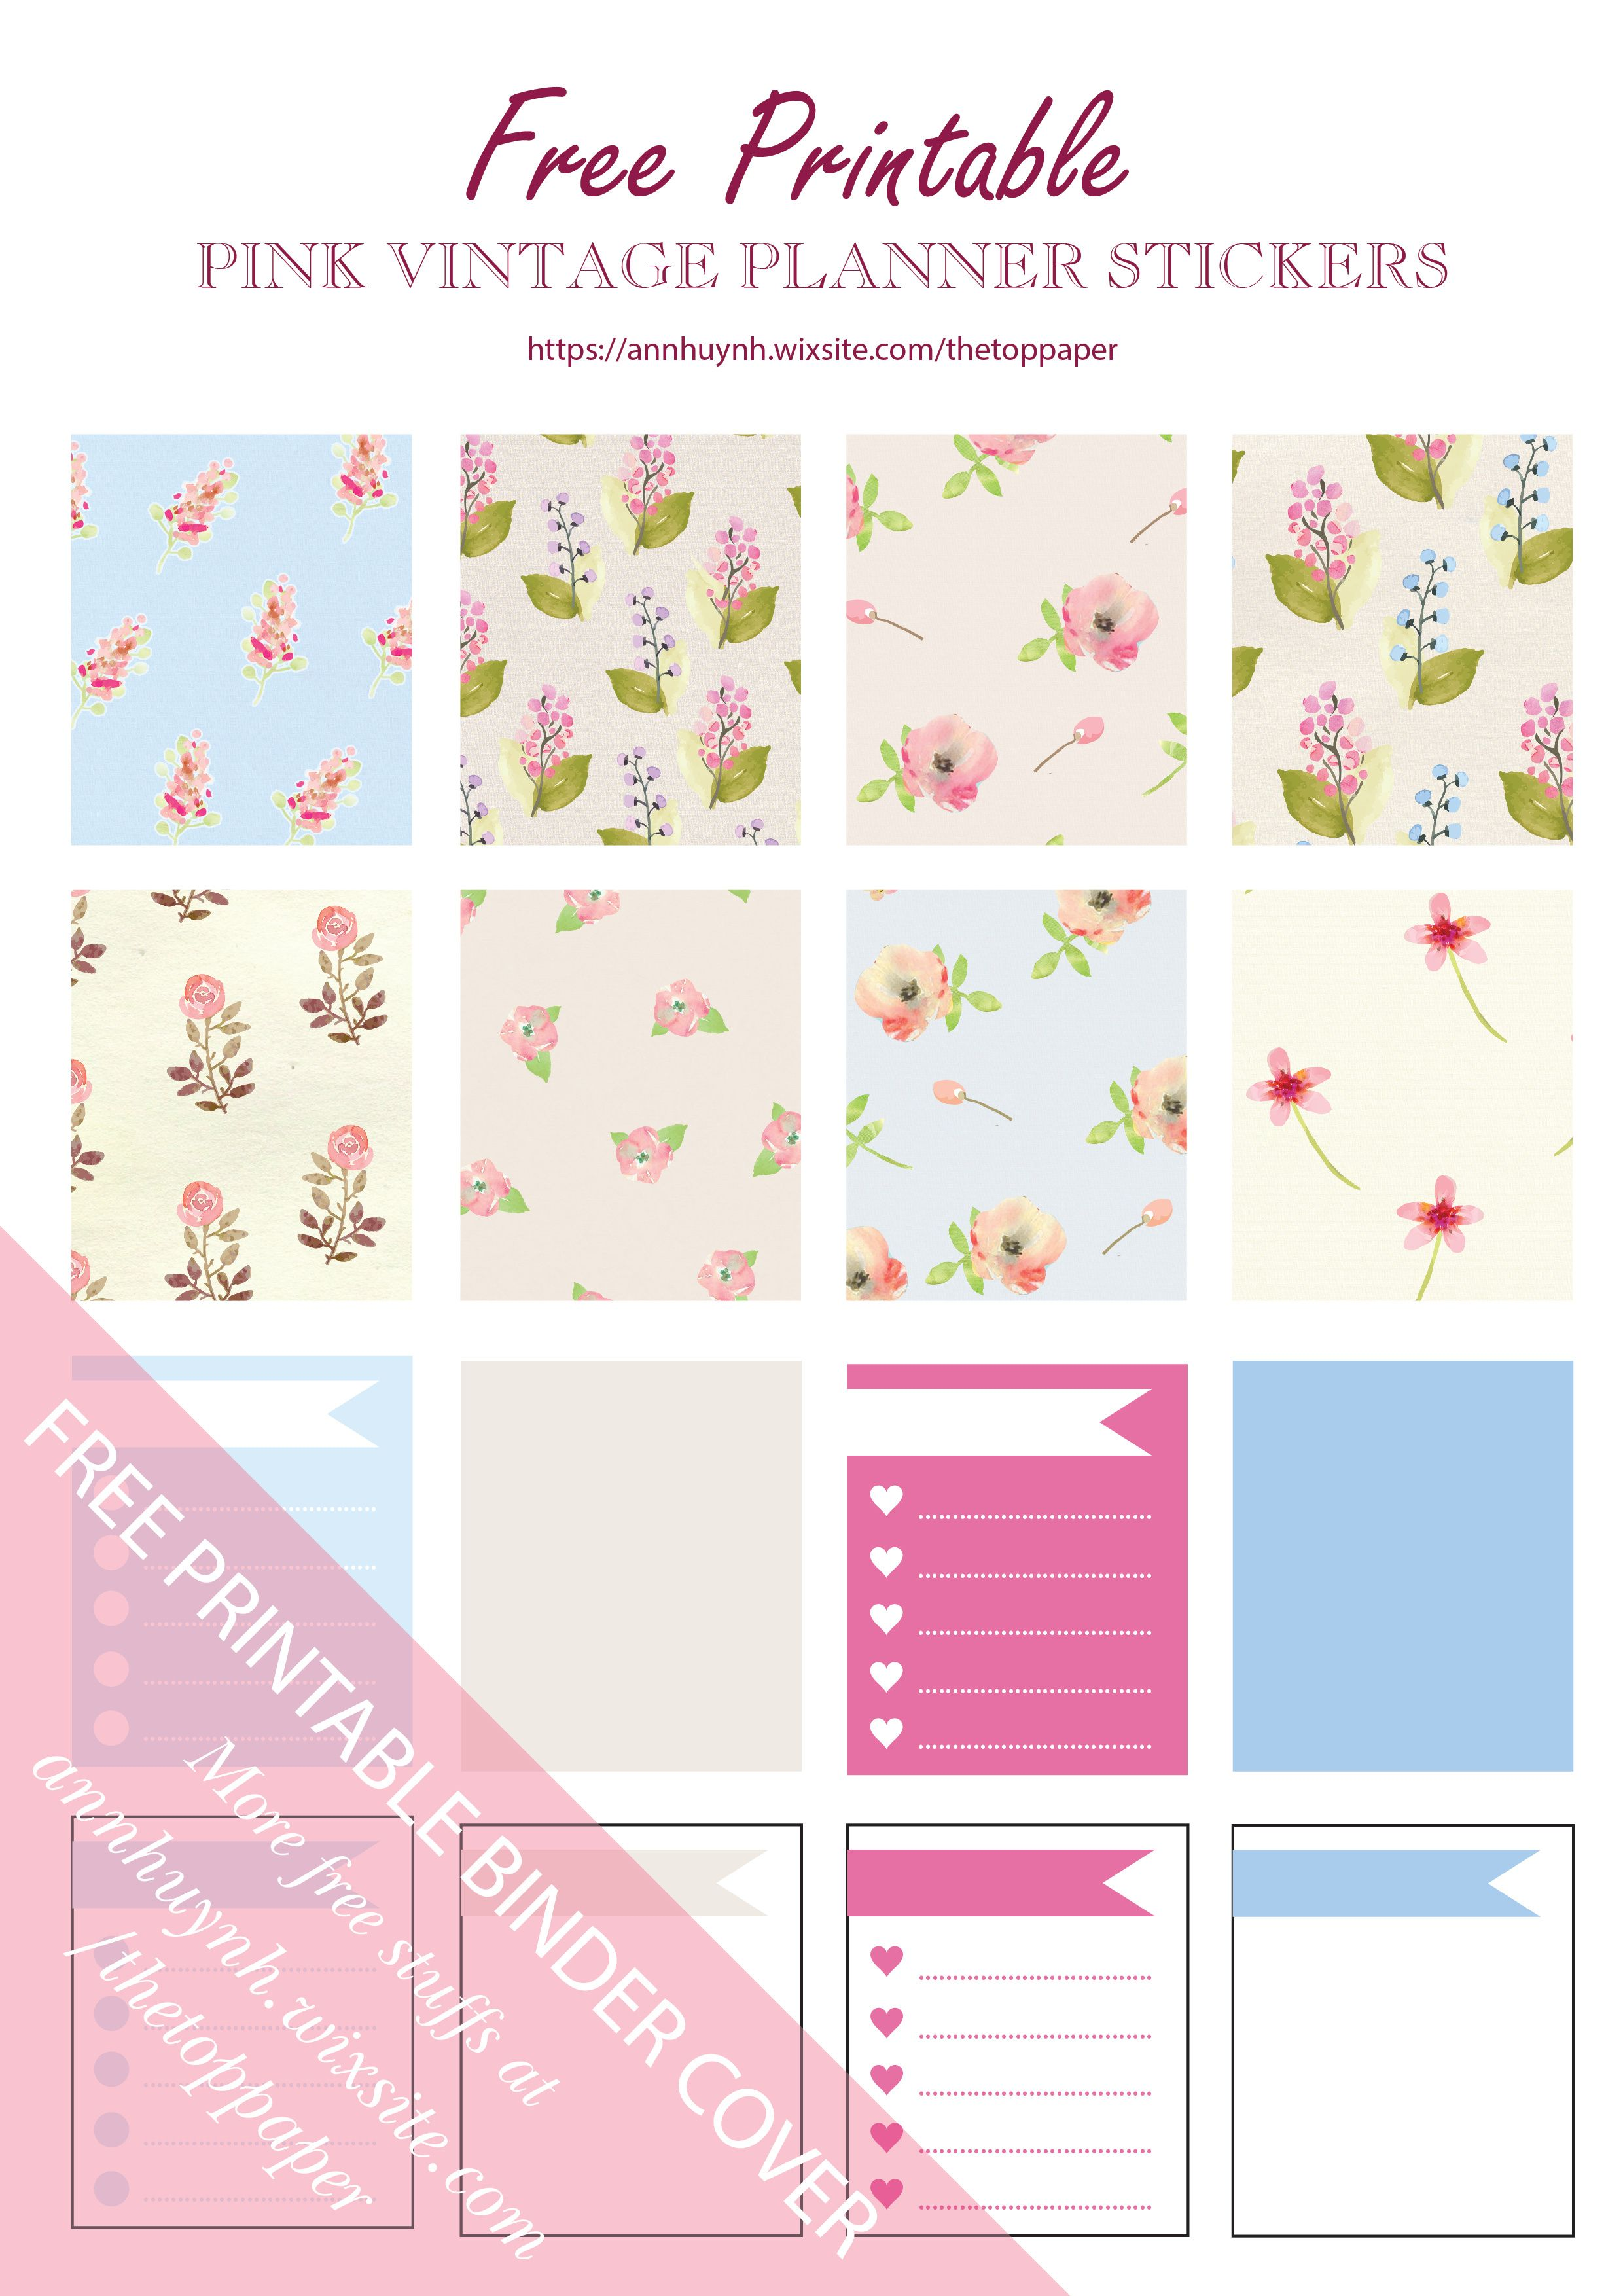 free printable pink vintage planner stickers from the top paper bujo pinterest loisirs. Black Bedroom Furniture Sets. Home Design Ideas